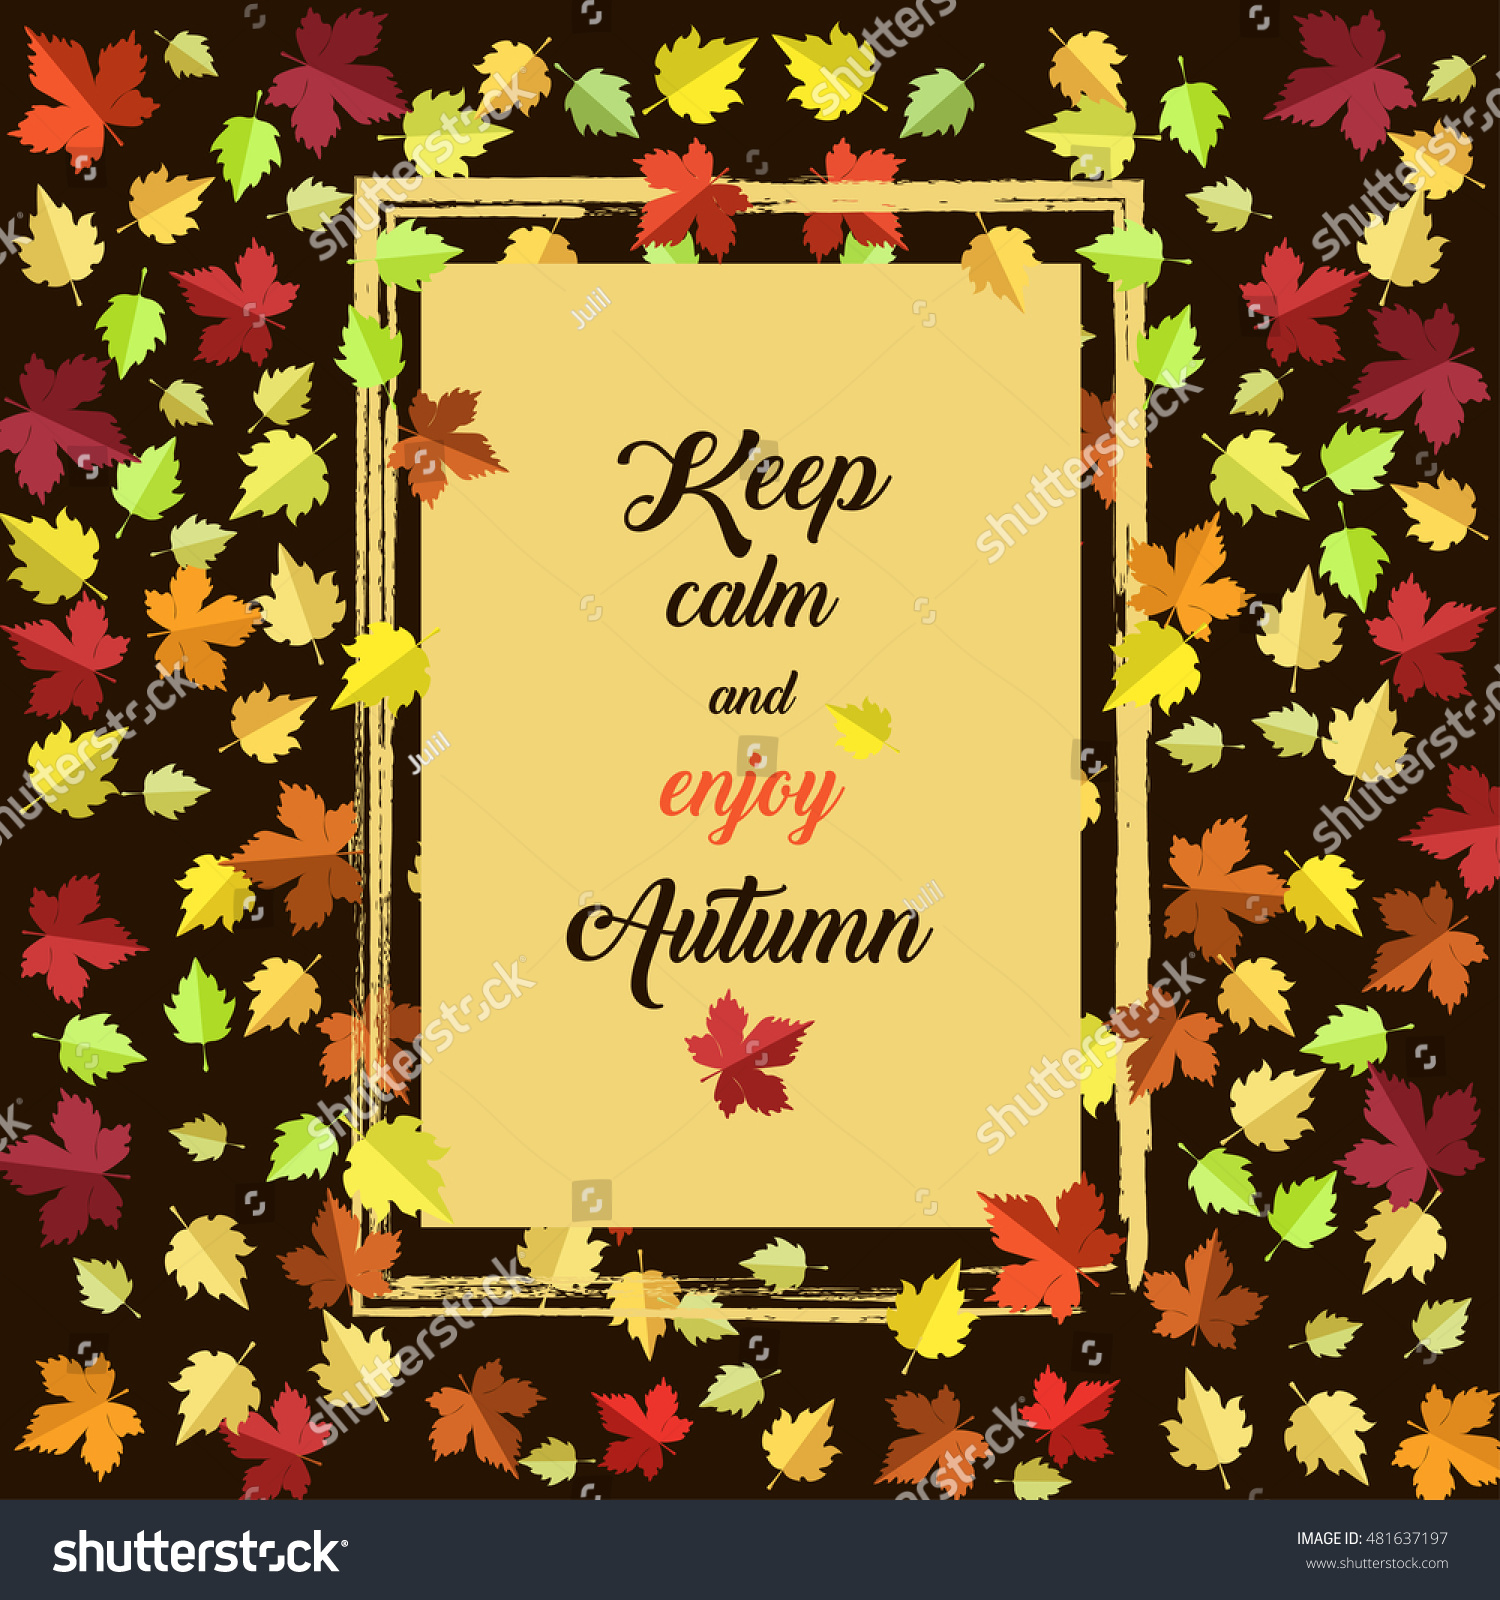 Keep Calm And Enjoy Autumn. Frame With Inspirational Quote And Hand Drawn  Falling Leaves.